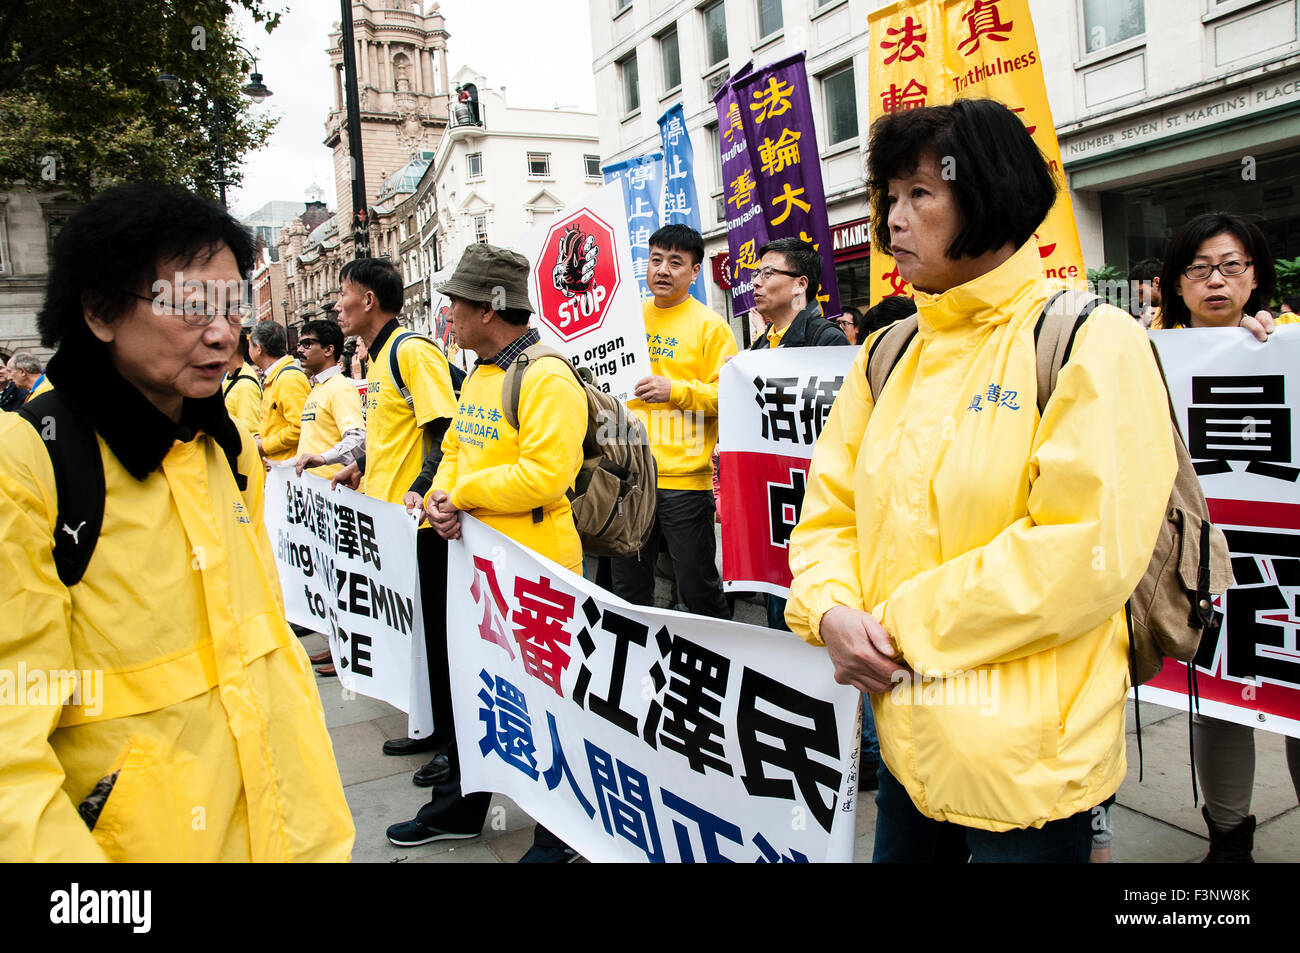 London, UK. 10th Oct, 2015. Falun Dafa practitioners holding banners demanding justice for President Jiang Zemin - Stock Image